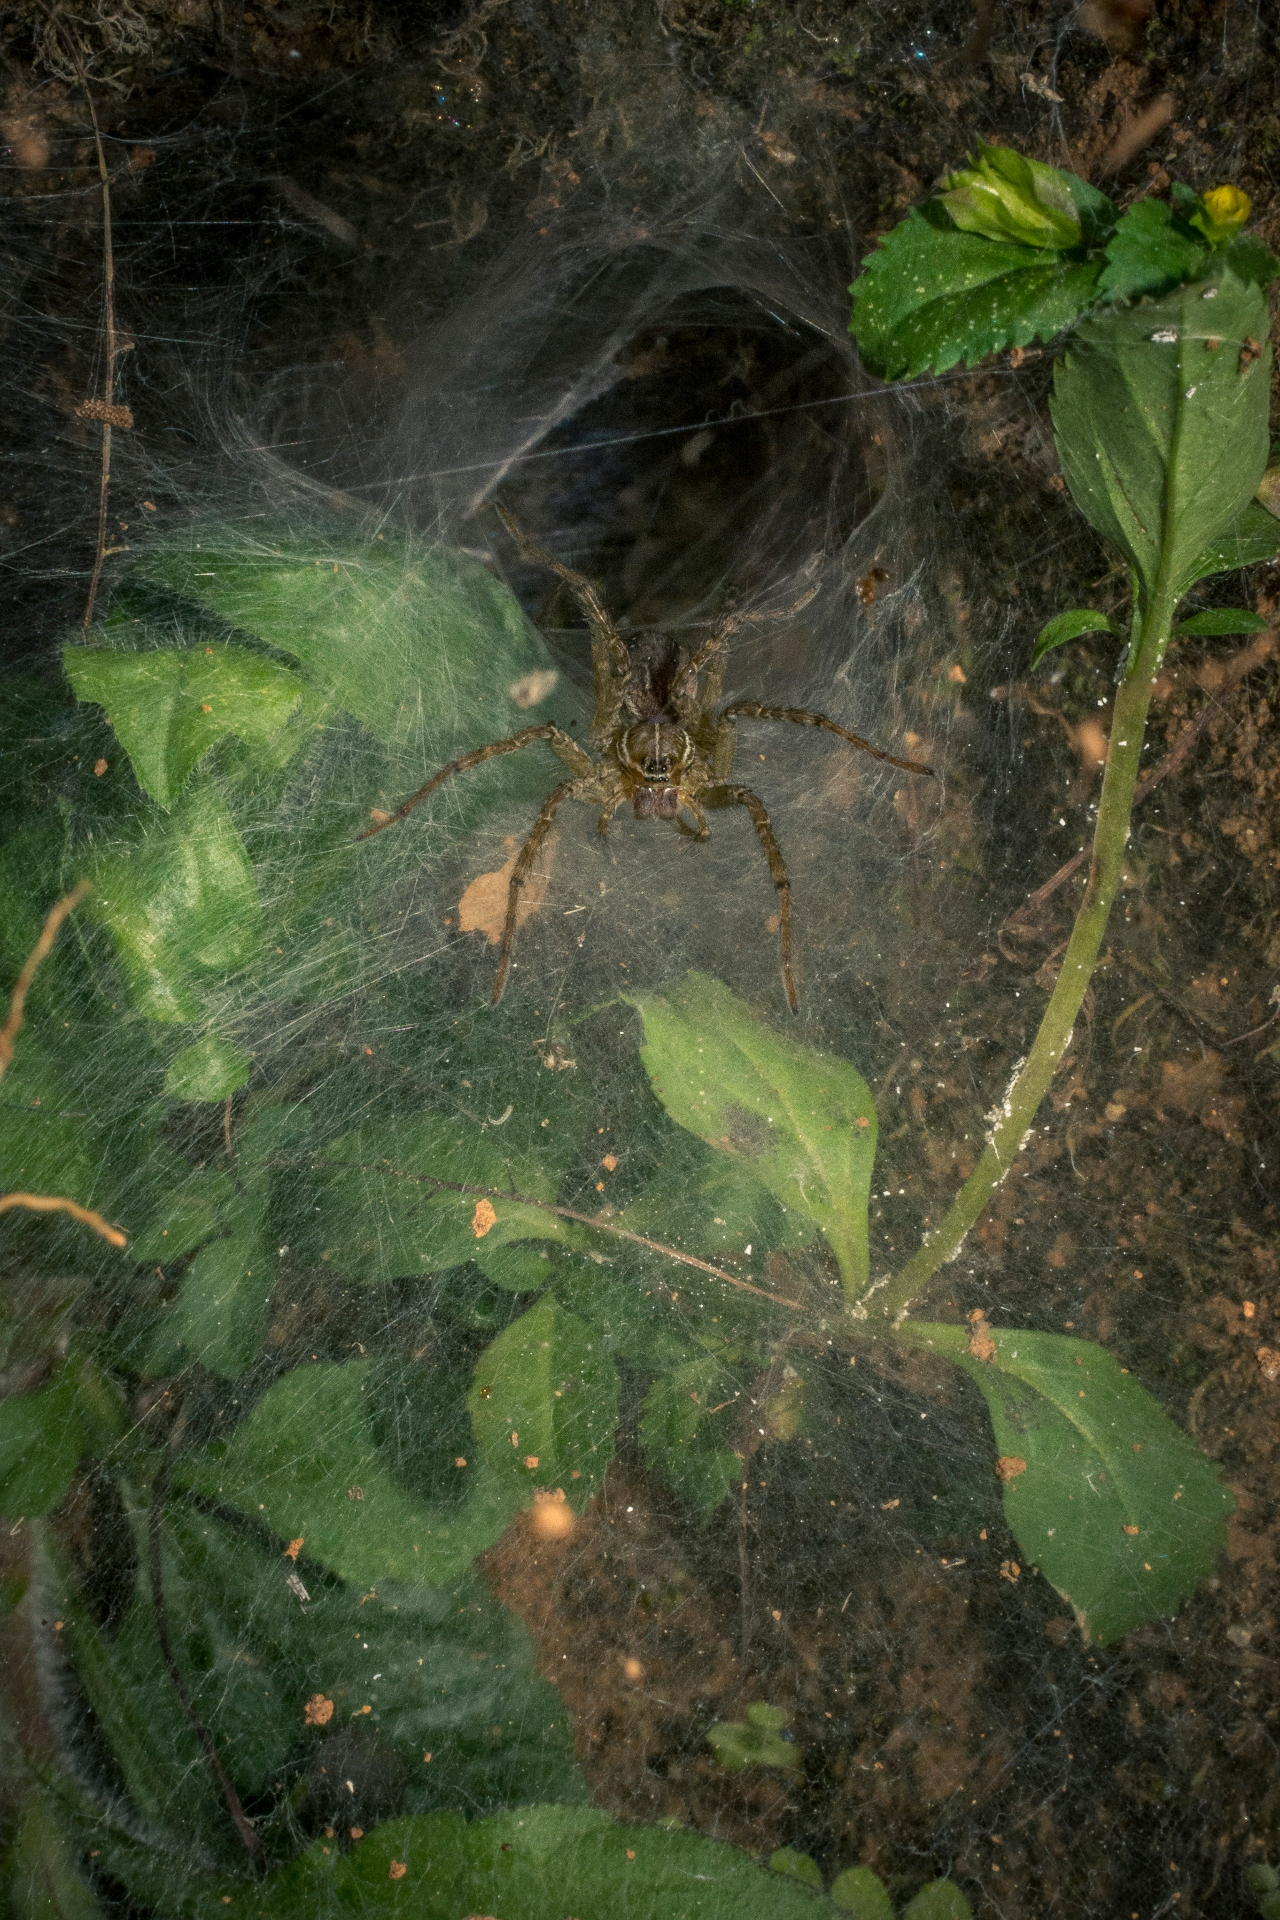 Some species of wolf spiders build funnel-shaped webs, to live in and to trap potential preys. Photo: Samuel John